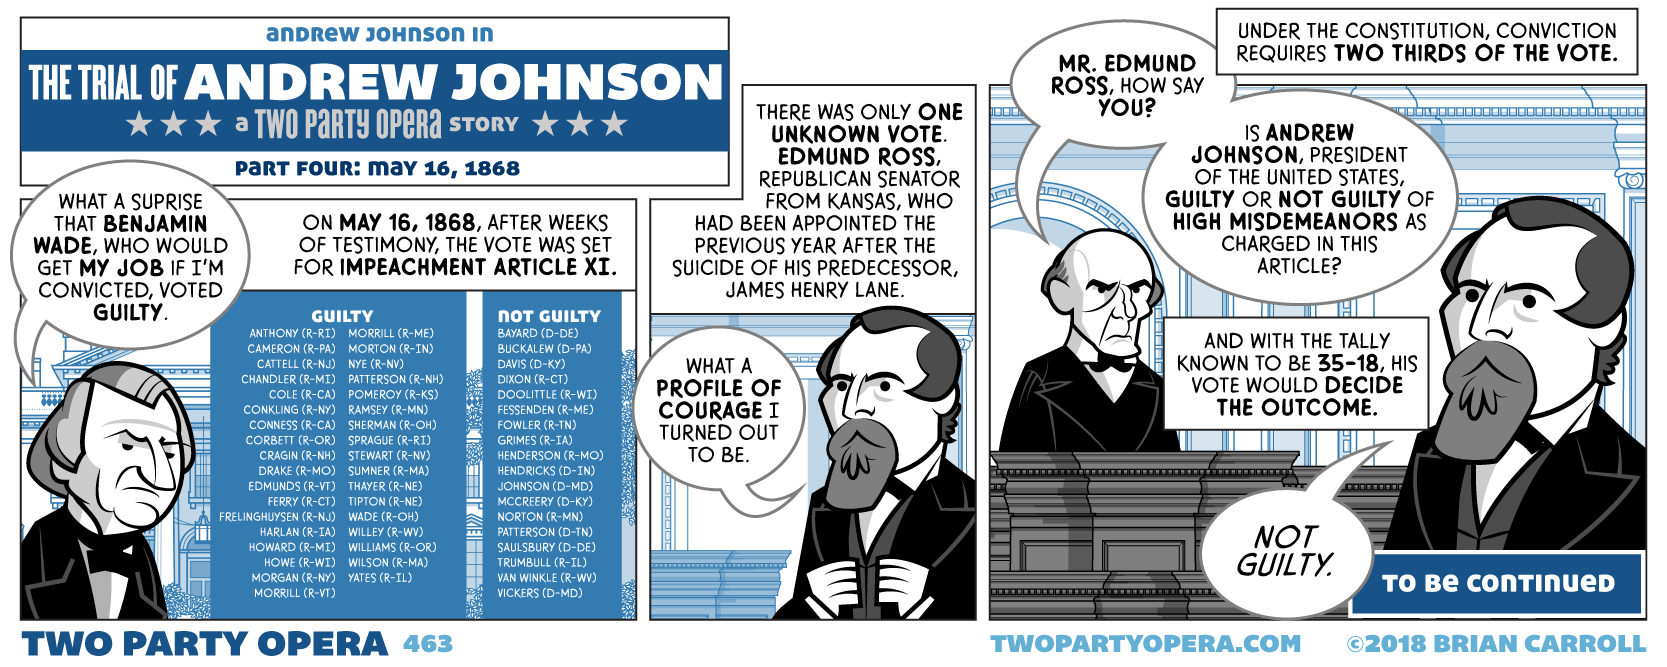 The Trial of Andrew Johnson – Part Four: May 16, 1868